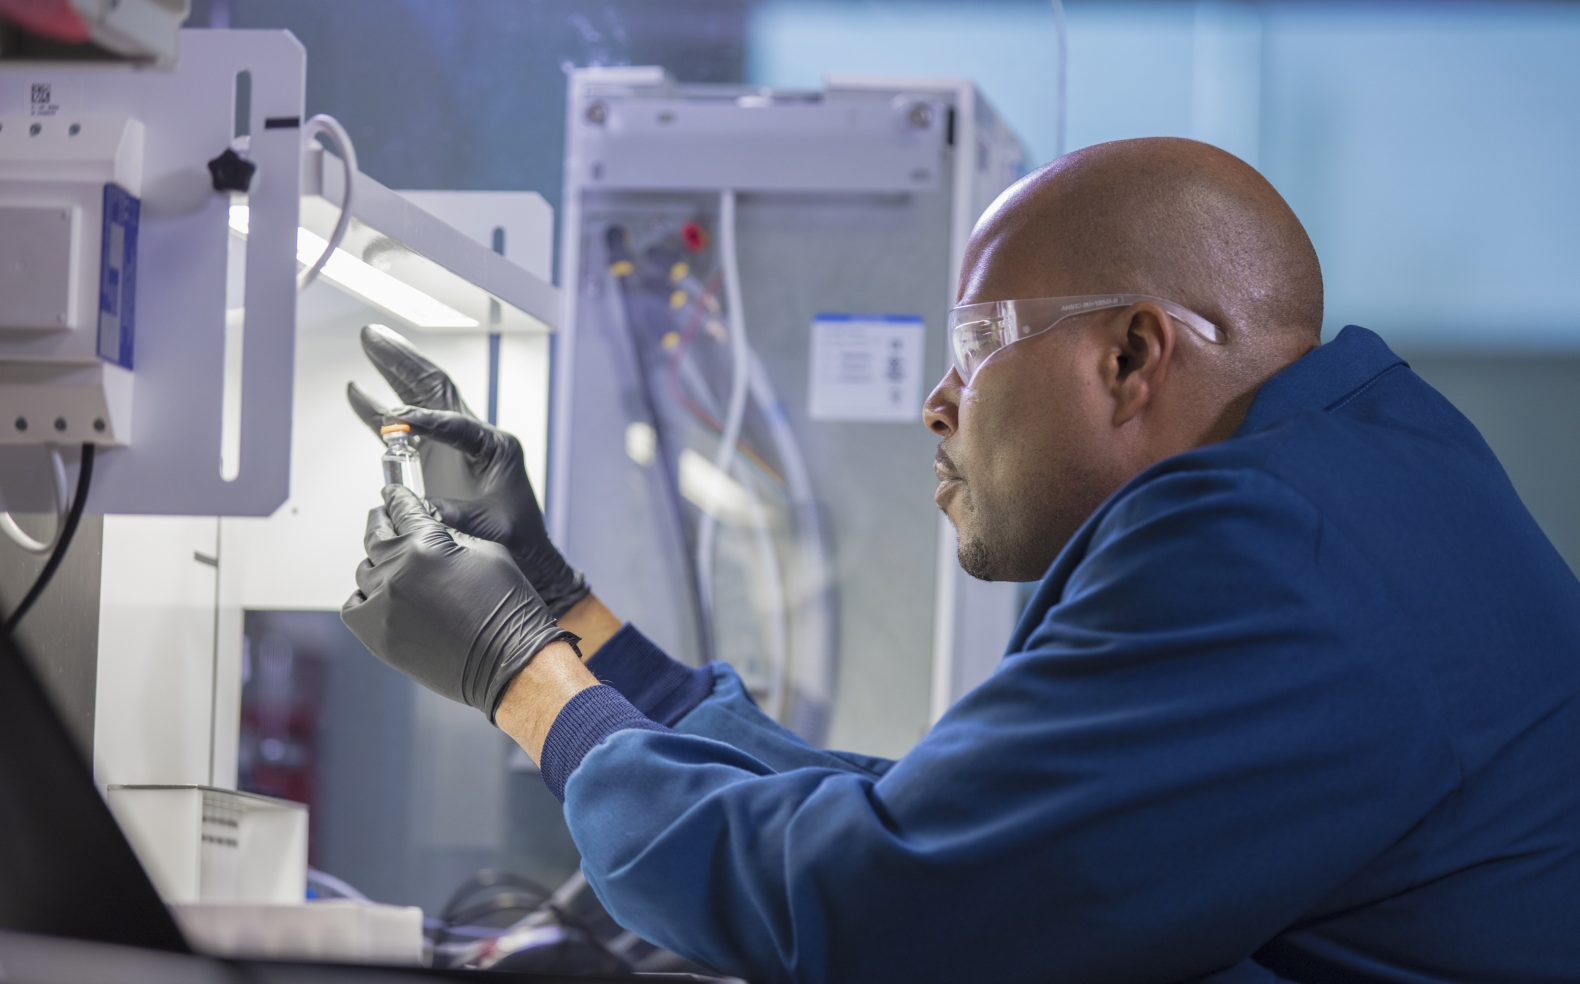 Profile view of a pharmaceutical employee in lab glasses and black gloves sitting and examining a clear, liquid sample.